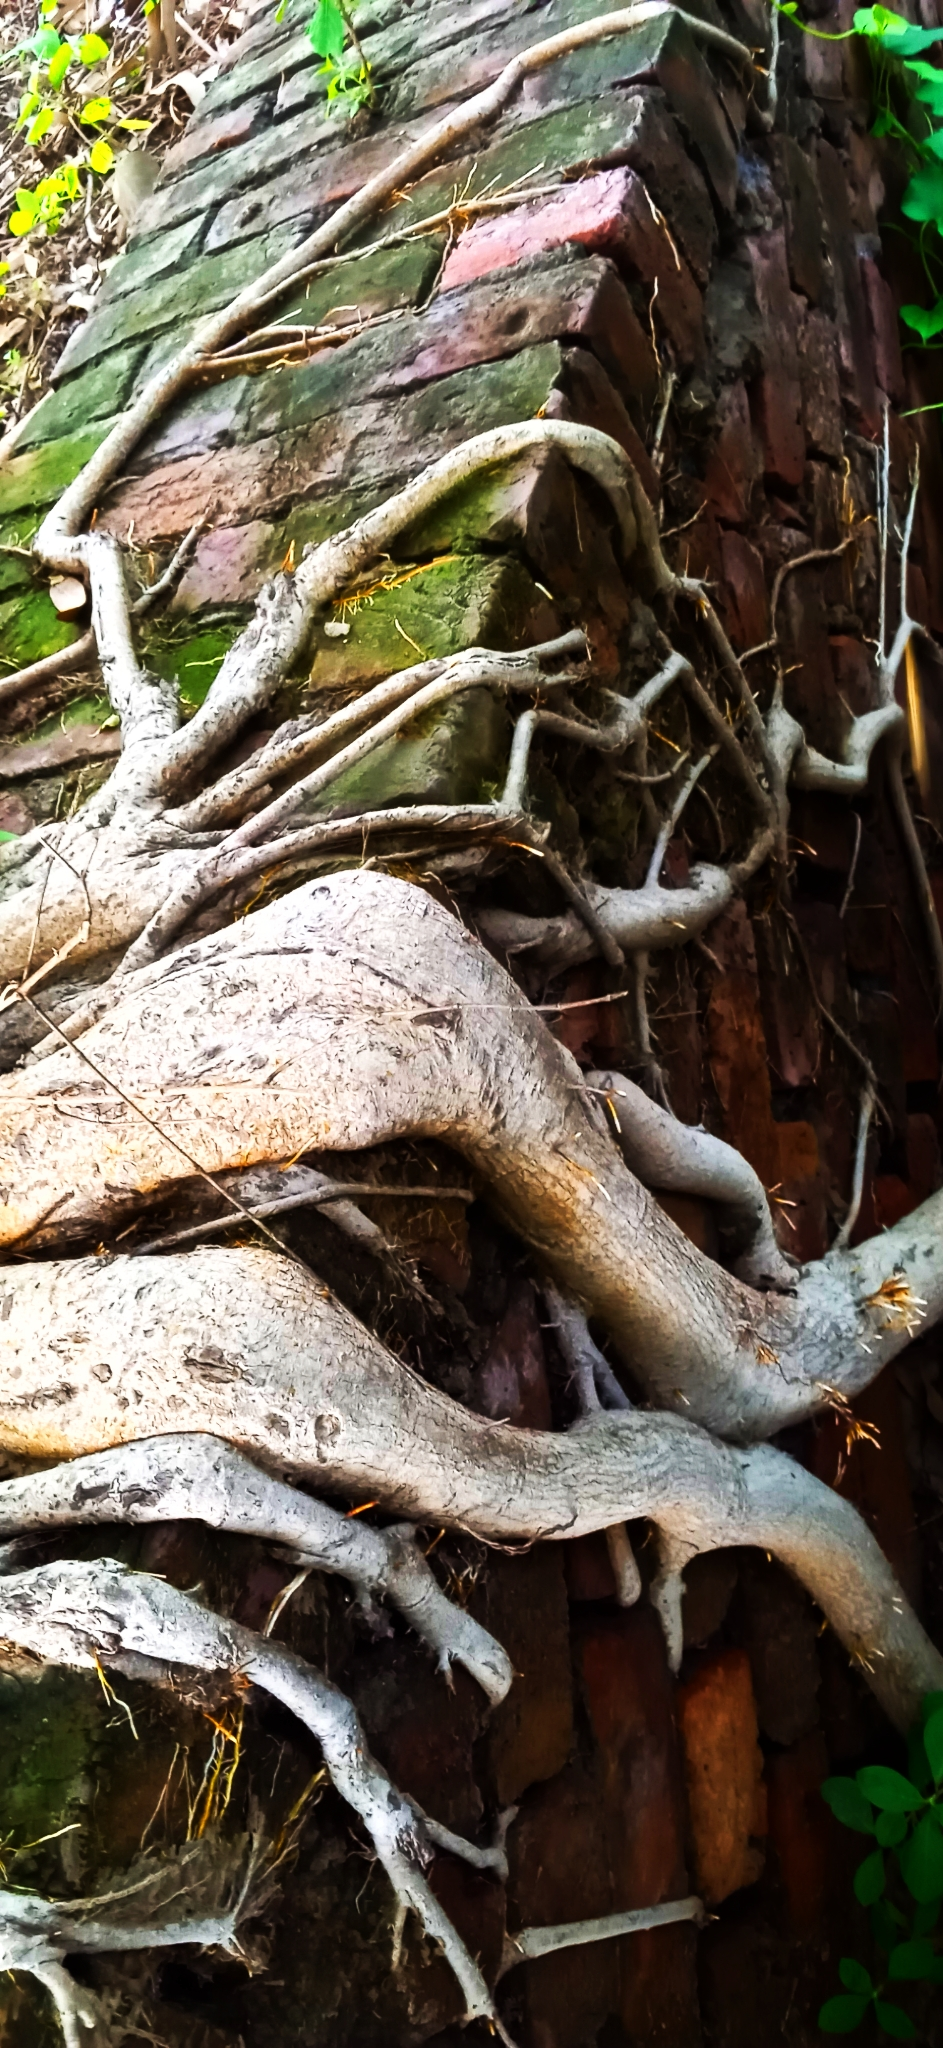 Roots of climber plant on a wall